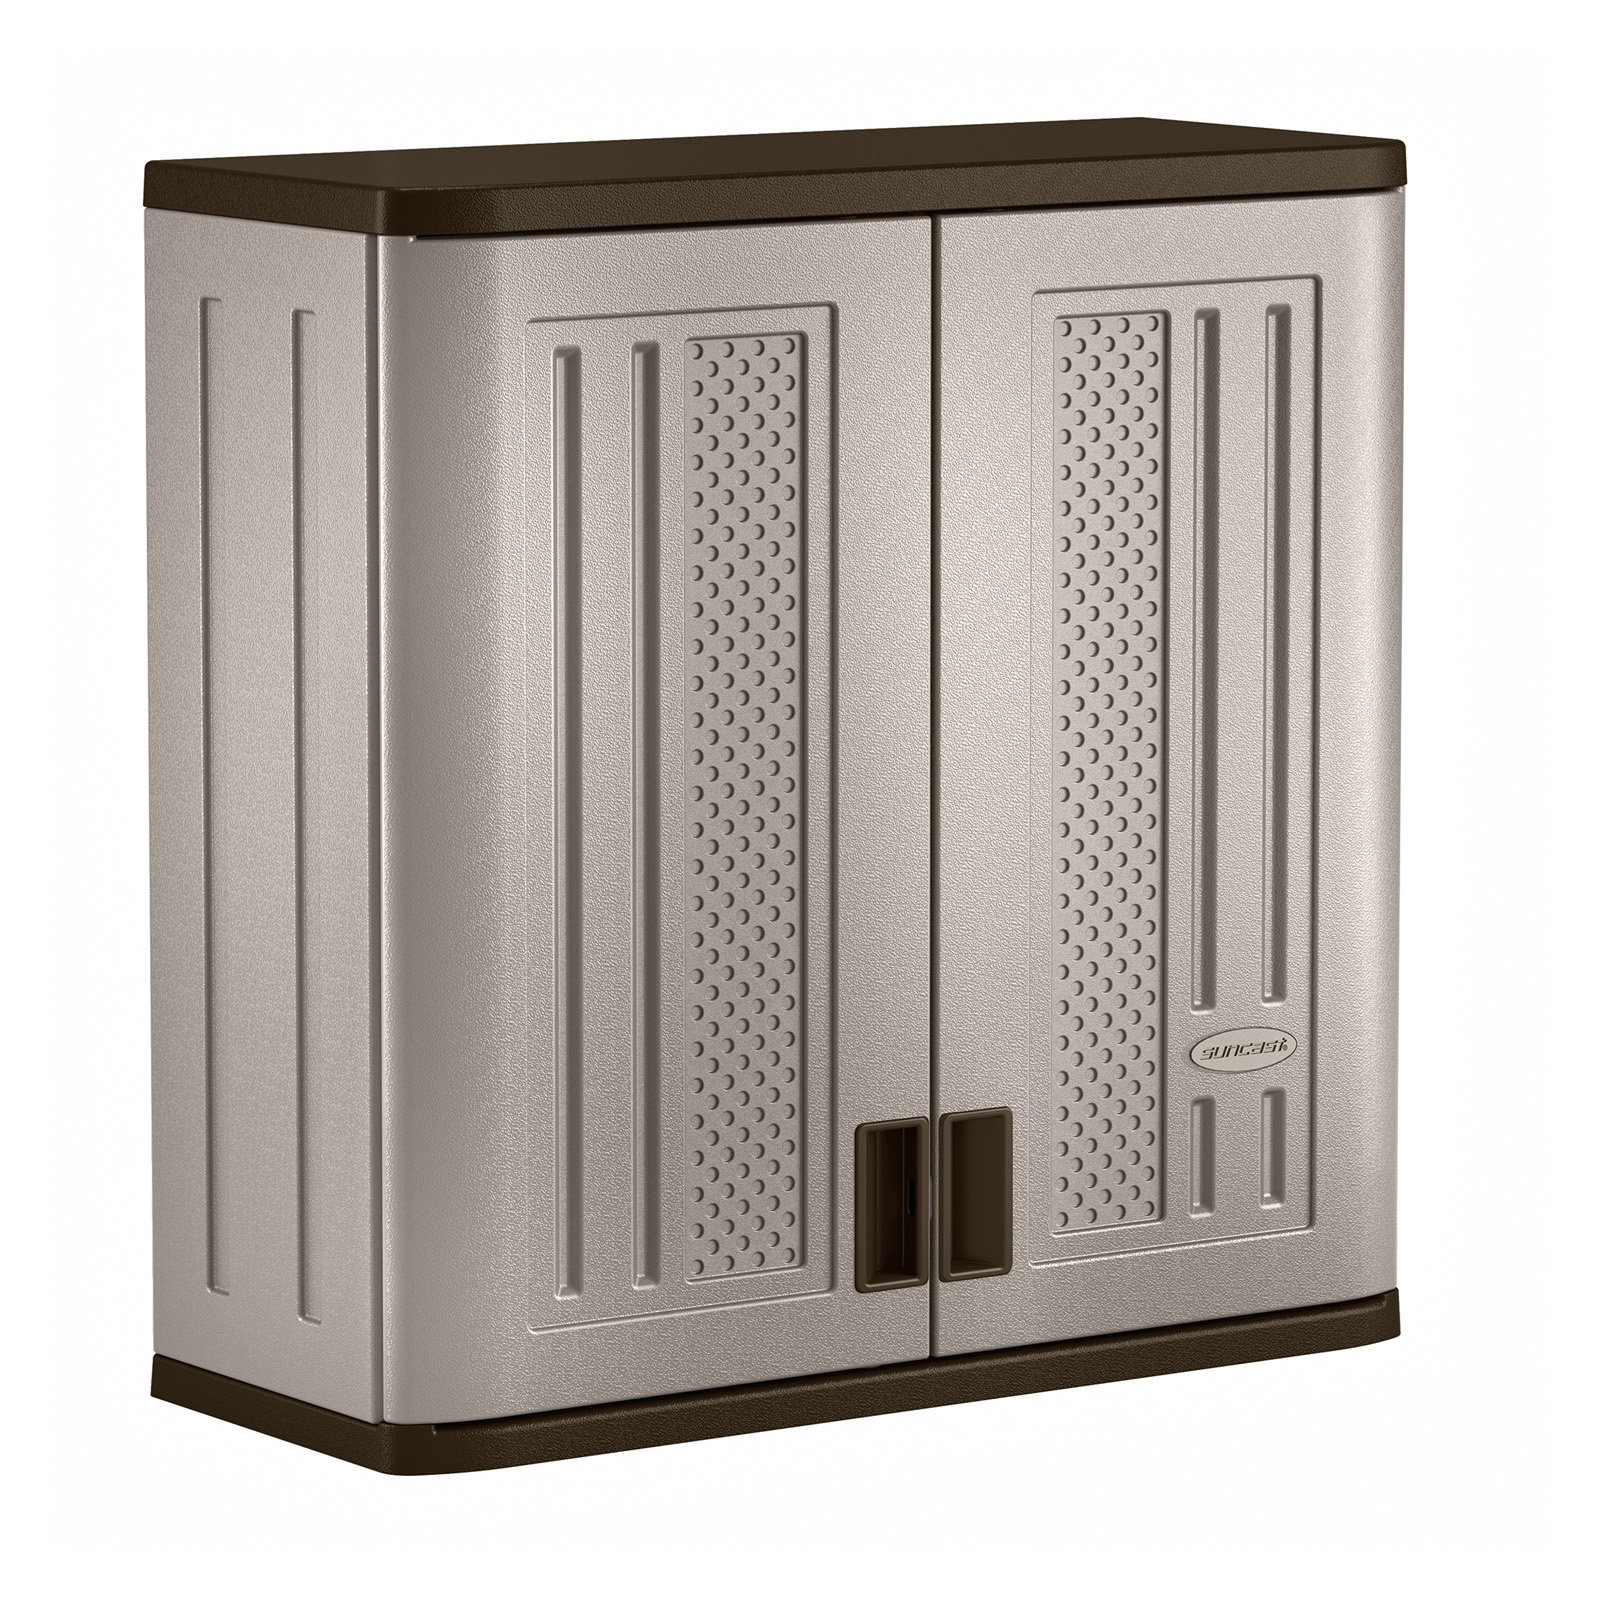 Suncast Wall Storage Cabinet, Resin, BMC3000